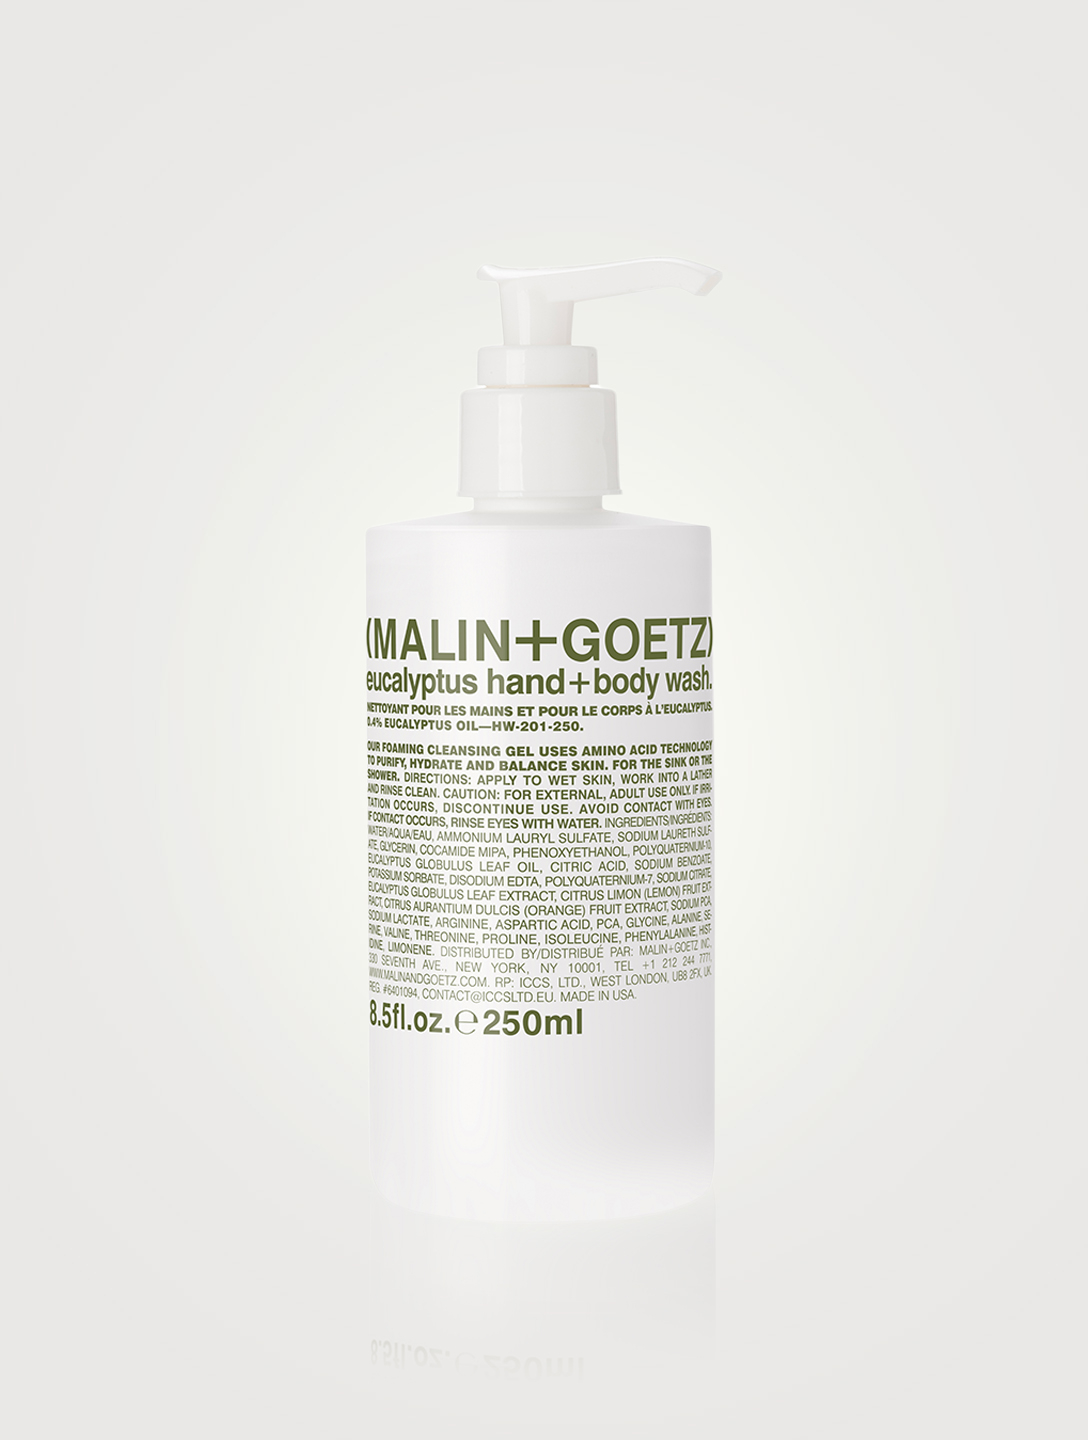 MALIN + GOETZ eucalyptus hand + body wash Beauty